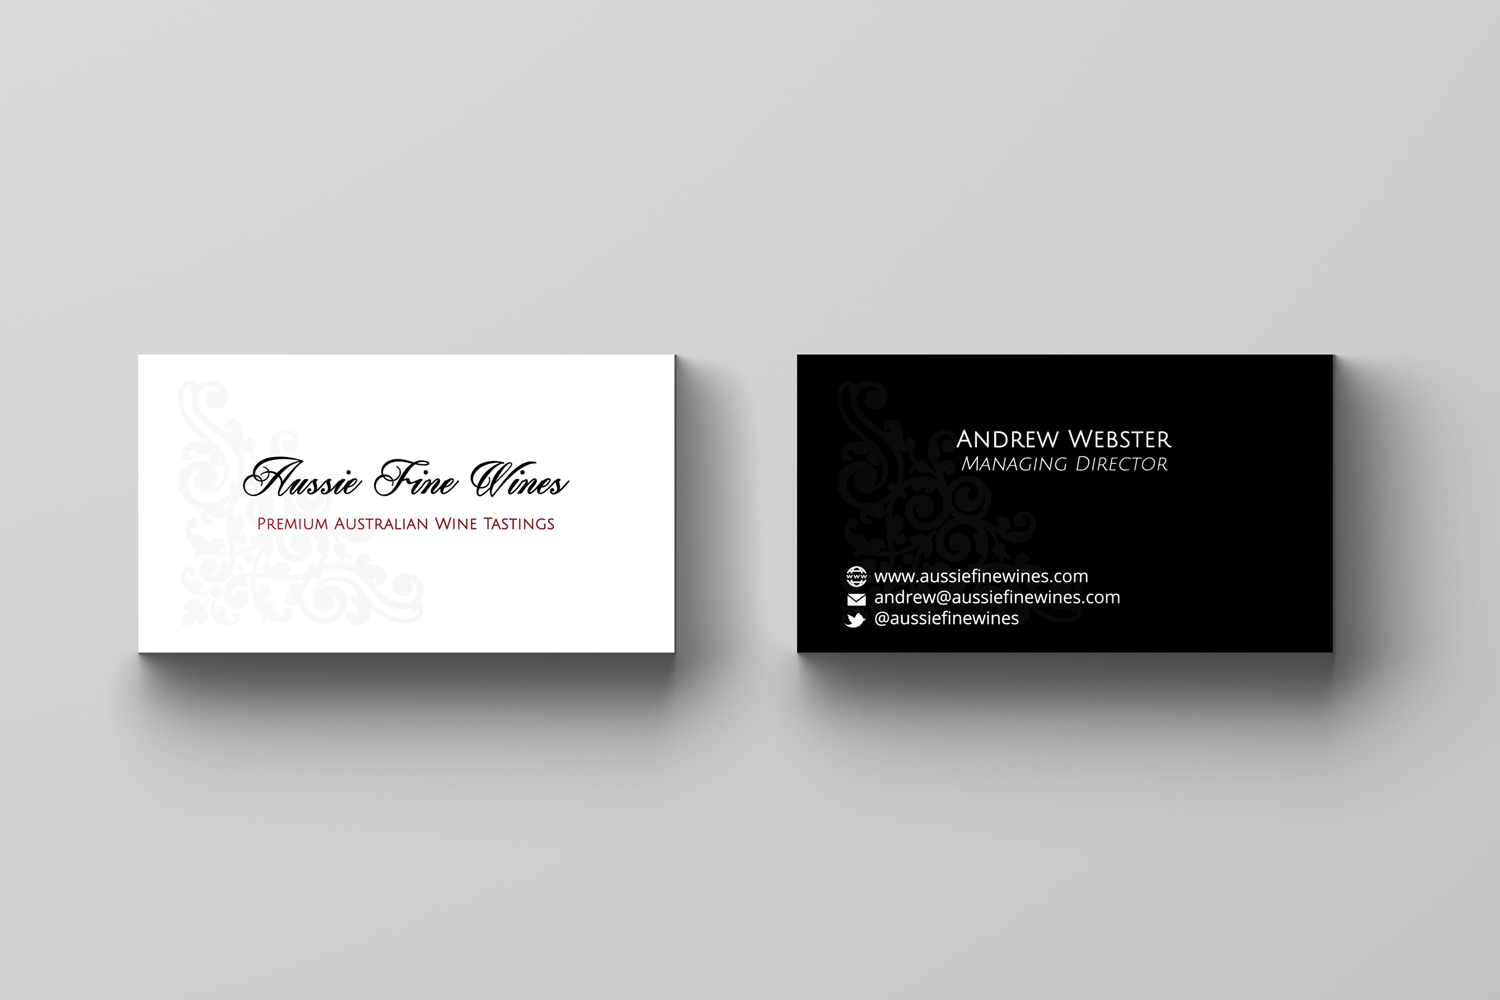 It company business card design for aussie fine wines by hd design business card design by hd design works for aussie fine wines design 10087027 colourmoves